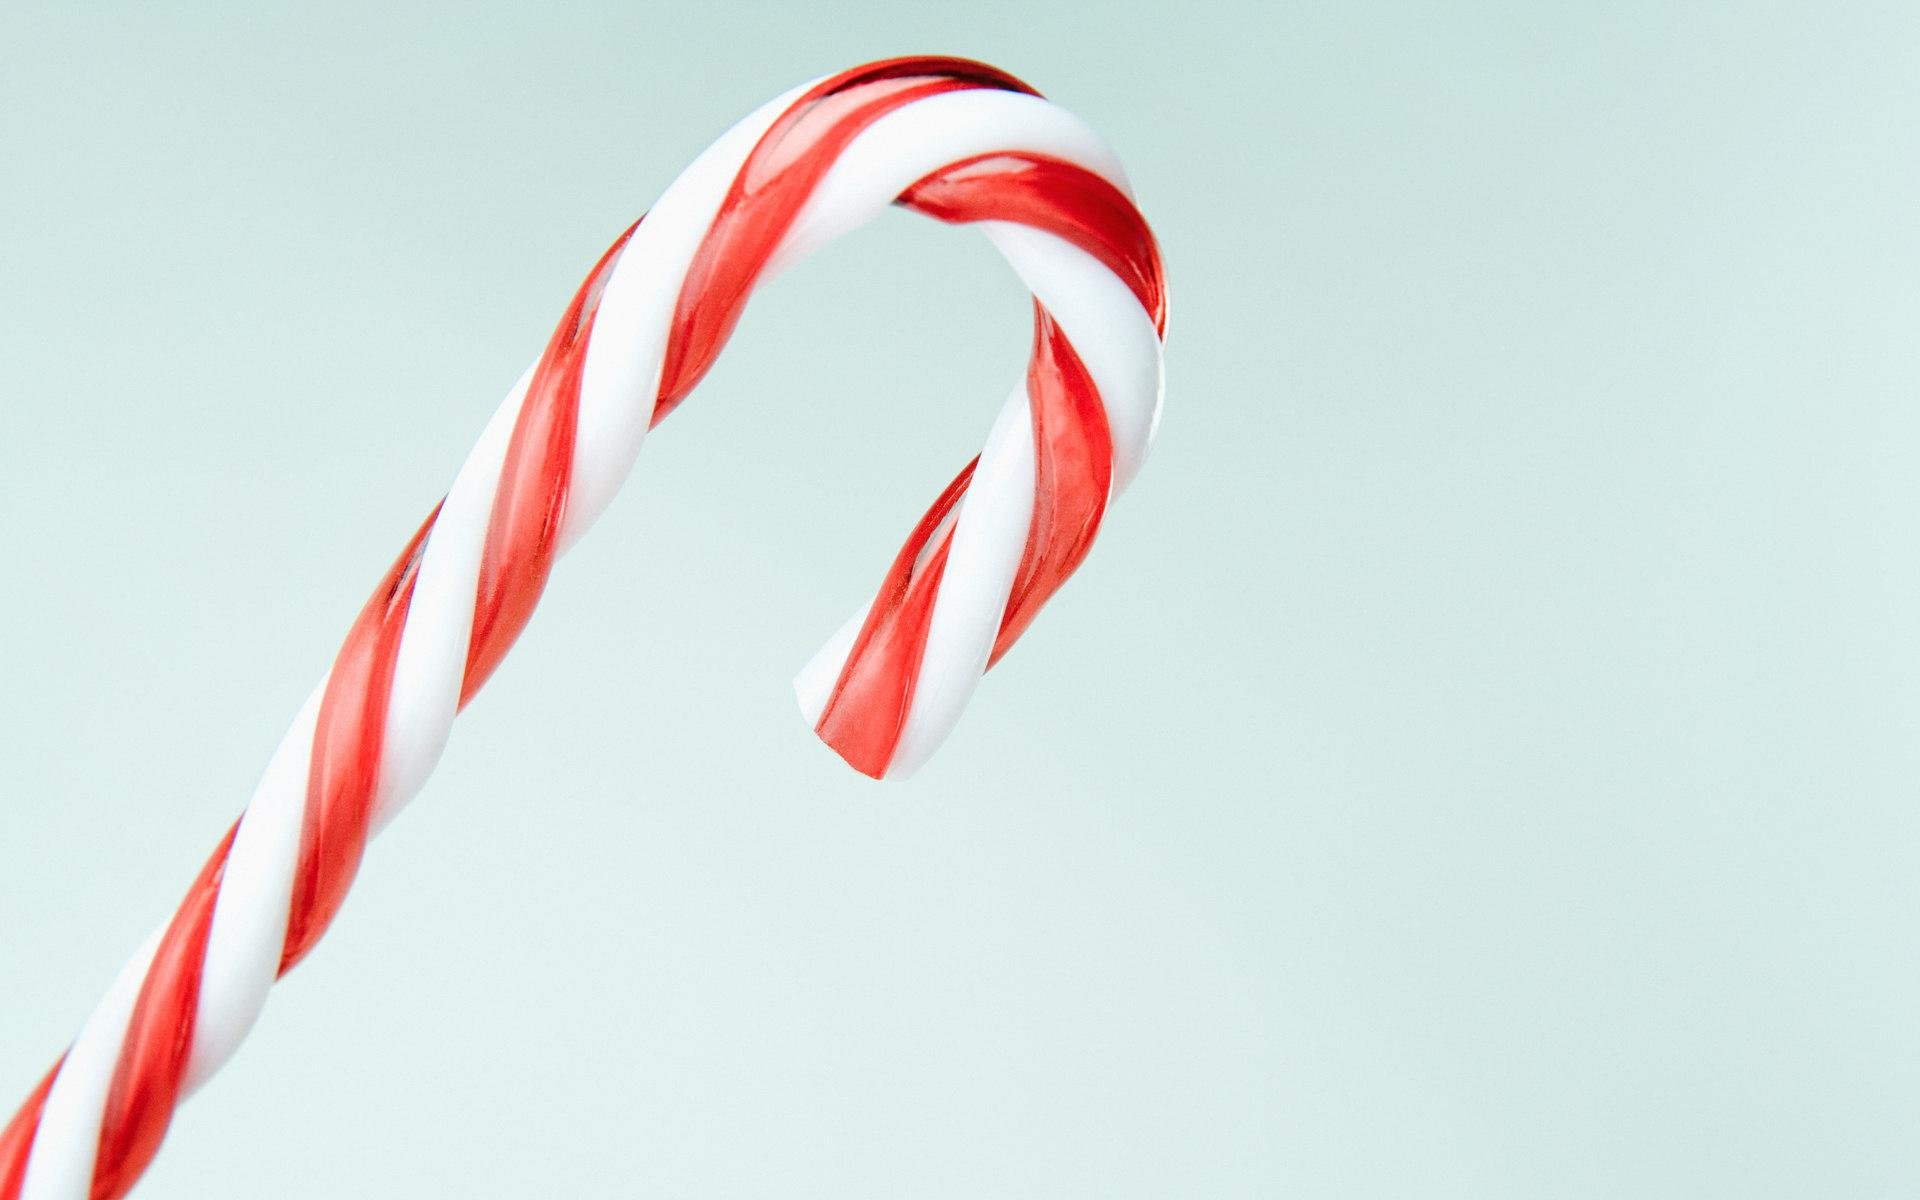 Candy Cane 1920x1200 Wallpapers 1920x1200 Wallpapers Pictures 1920x1200